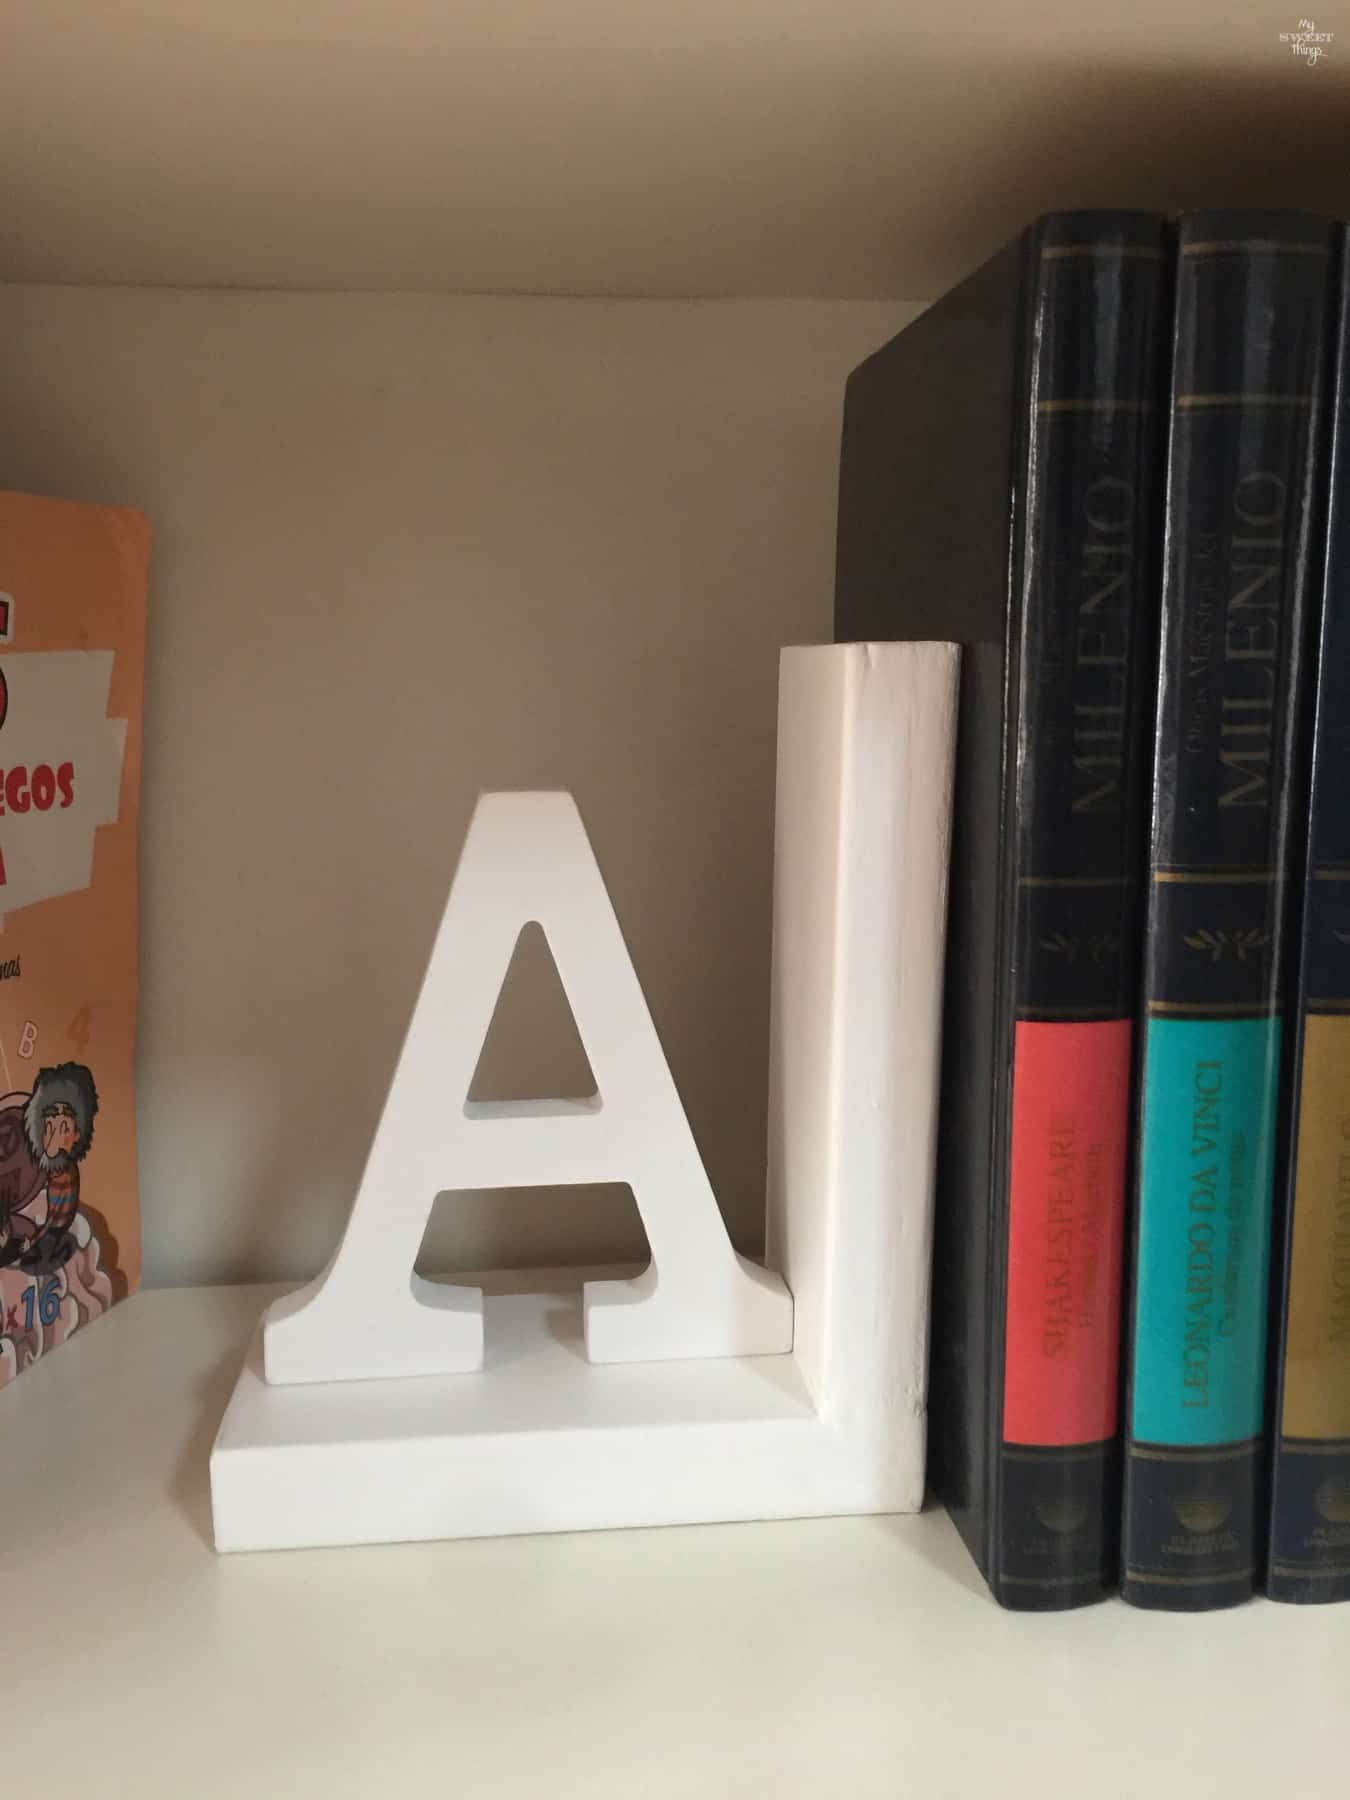 How to make stylish bookends for less than $5 with some scrap wood · Via www.sweethings.net